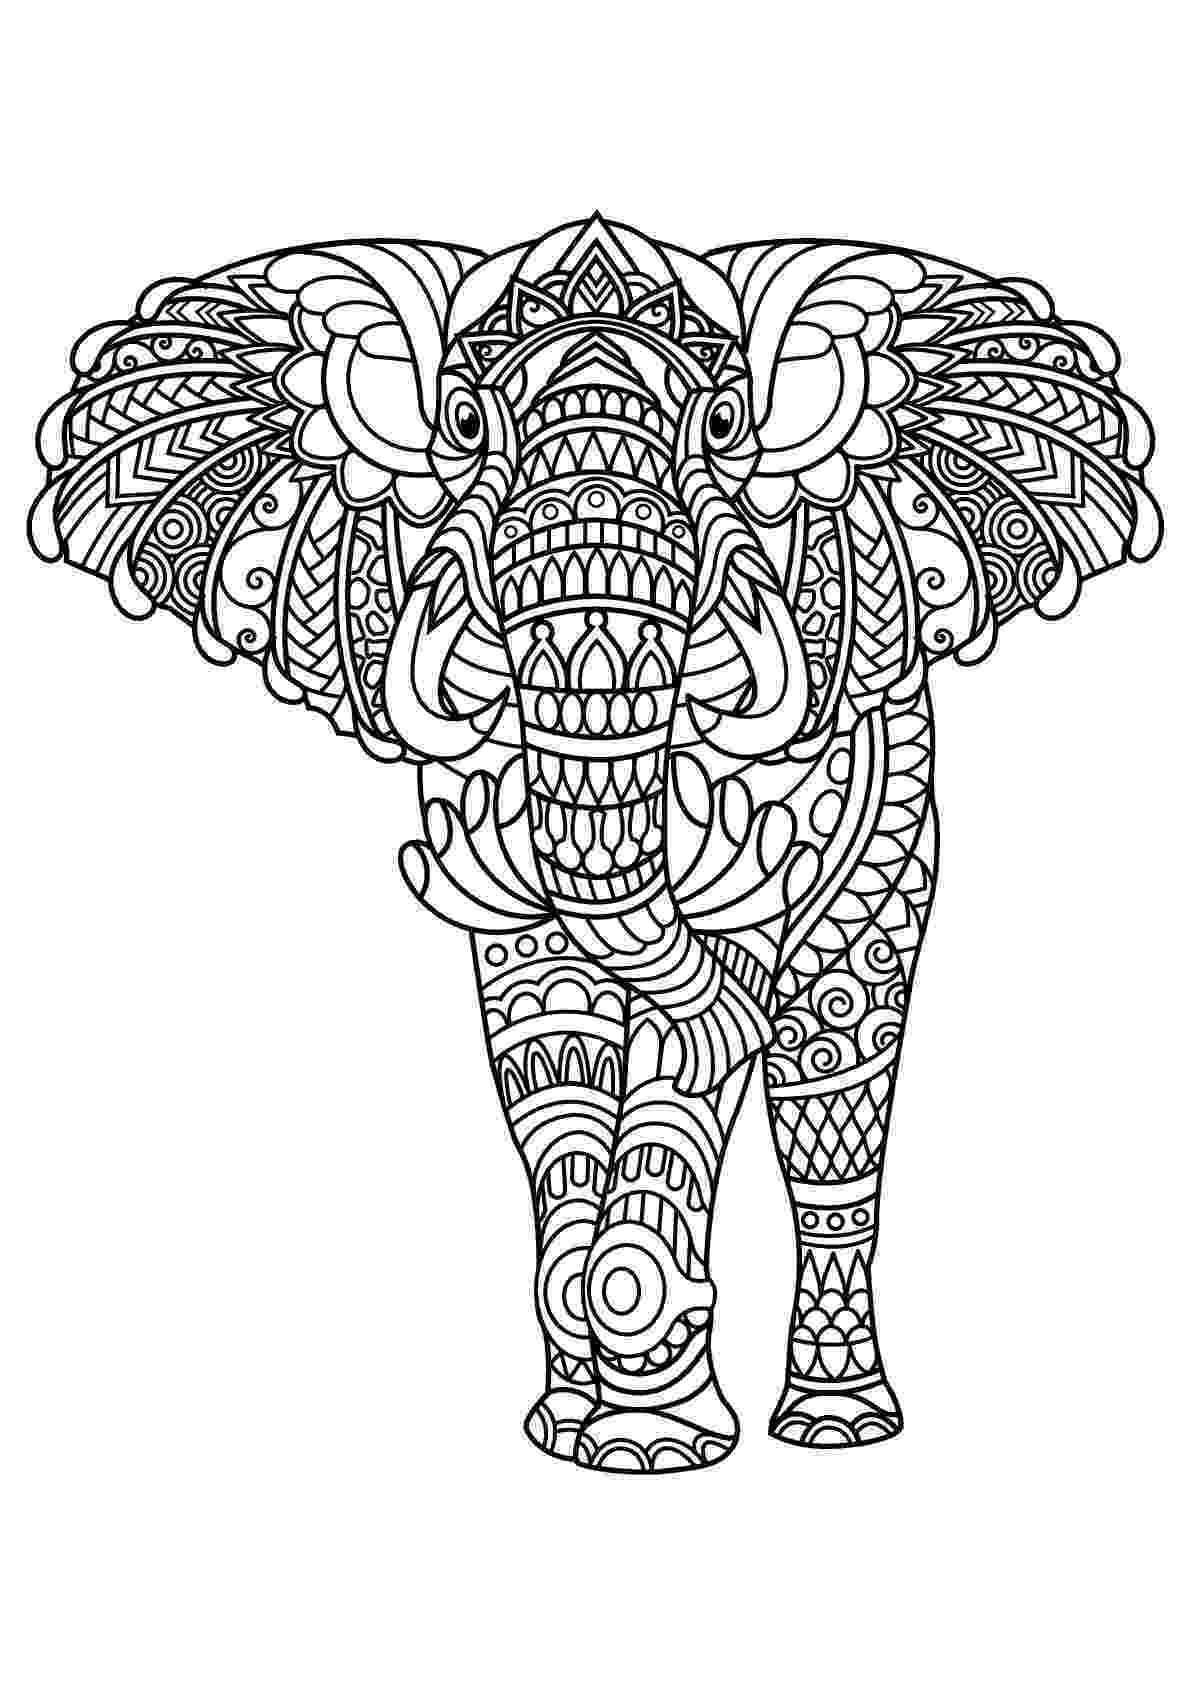 animal patterns colouring pages adult coloring pages dog animal patterns pergamano patterns pages colouring animal